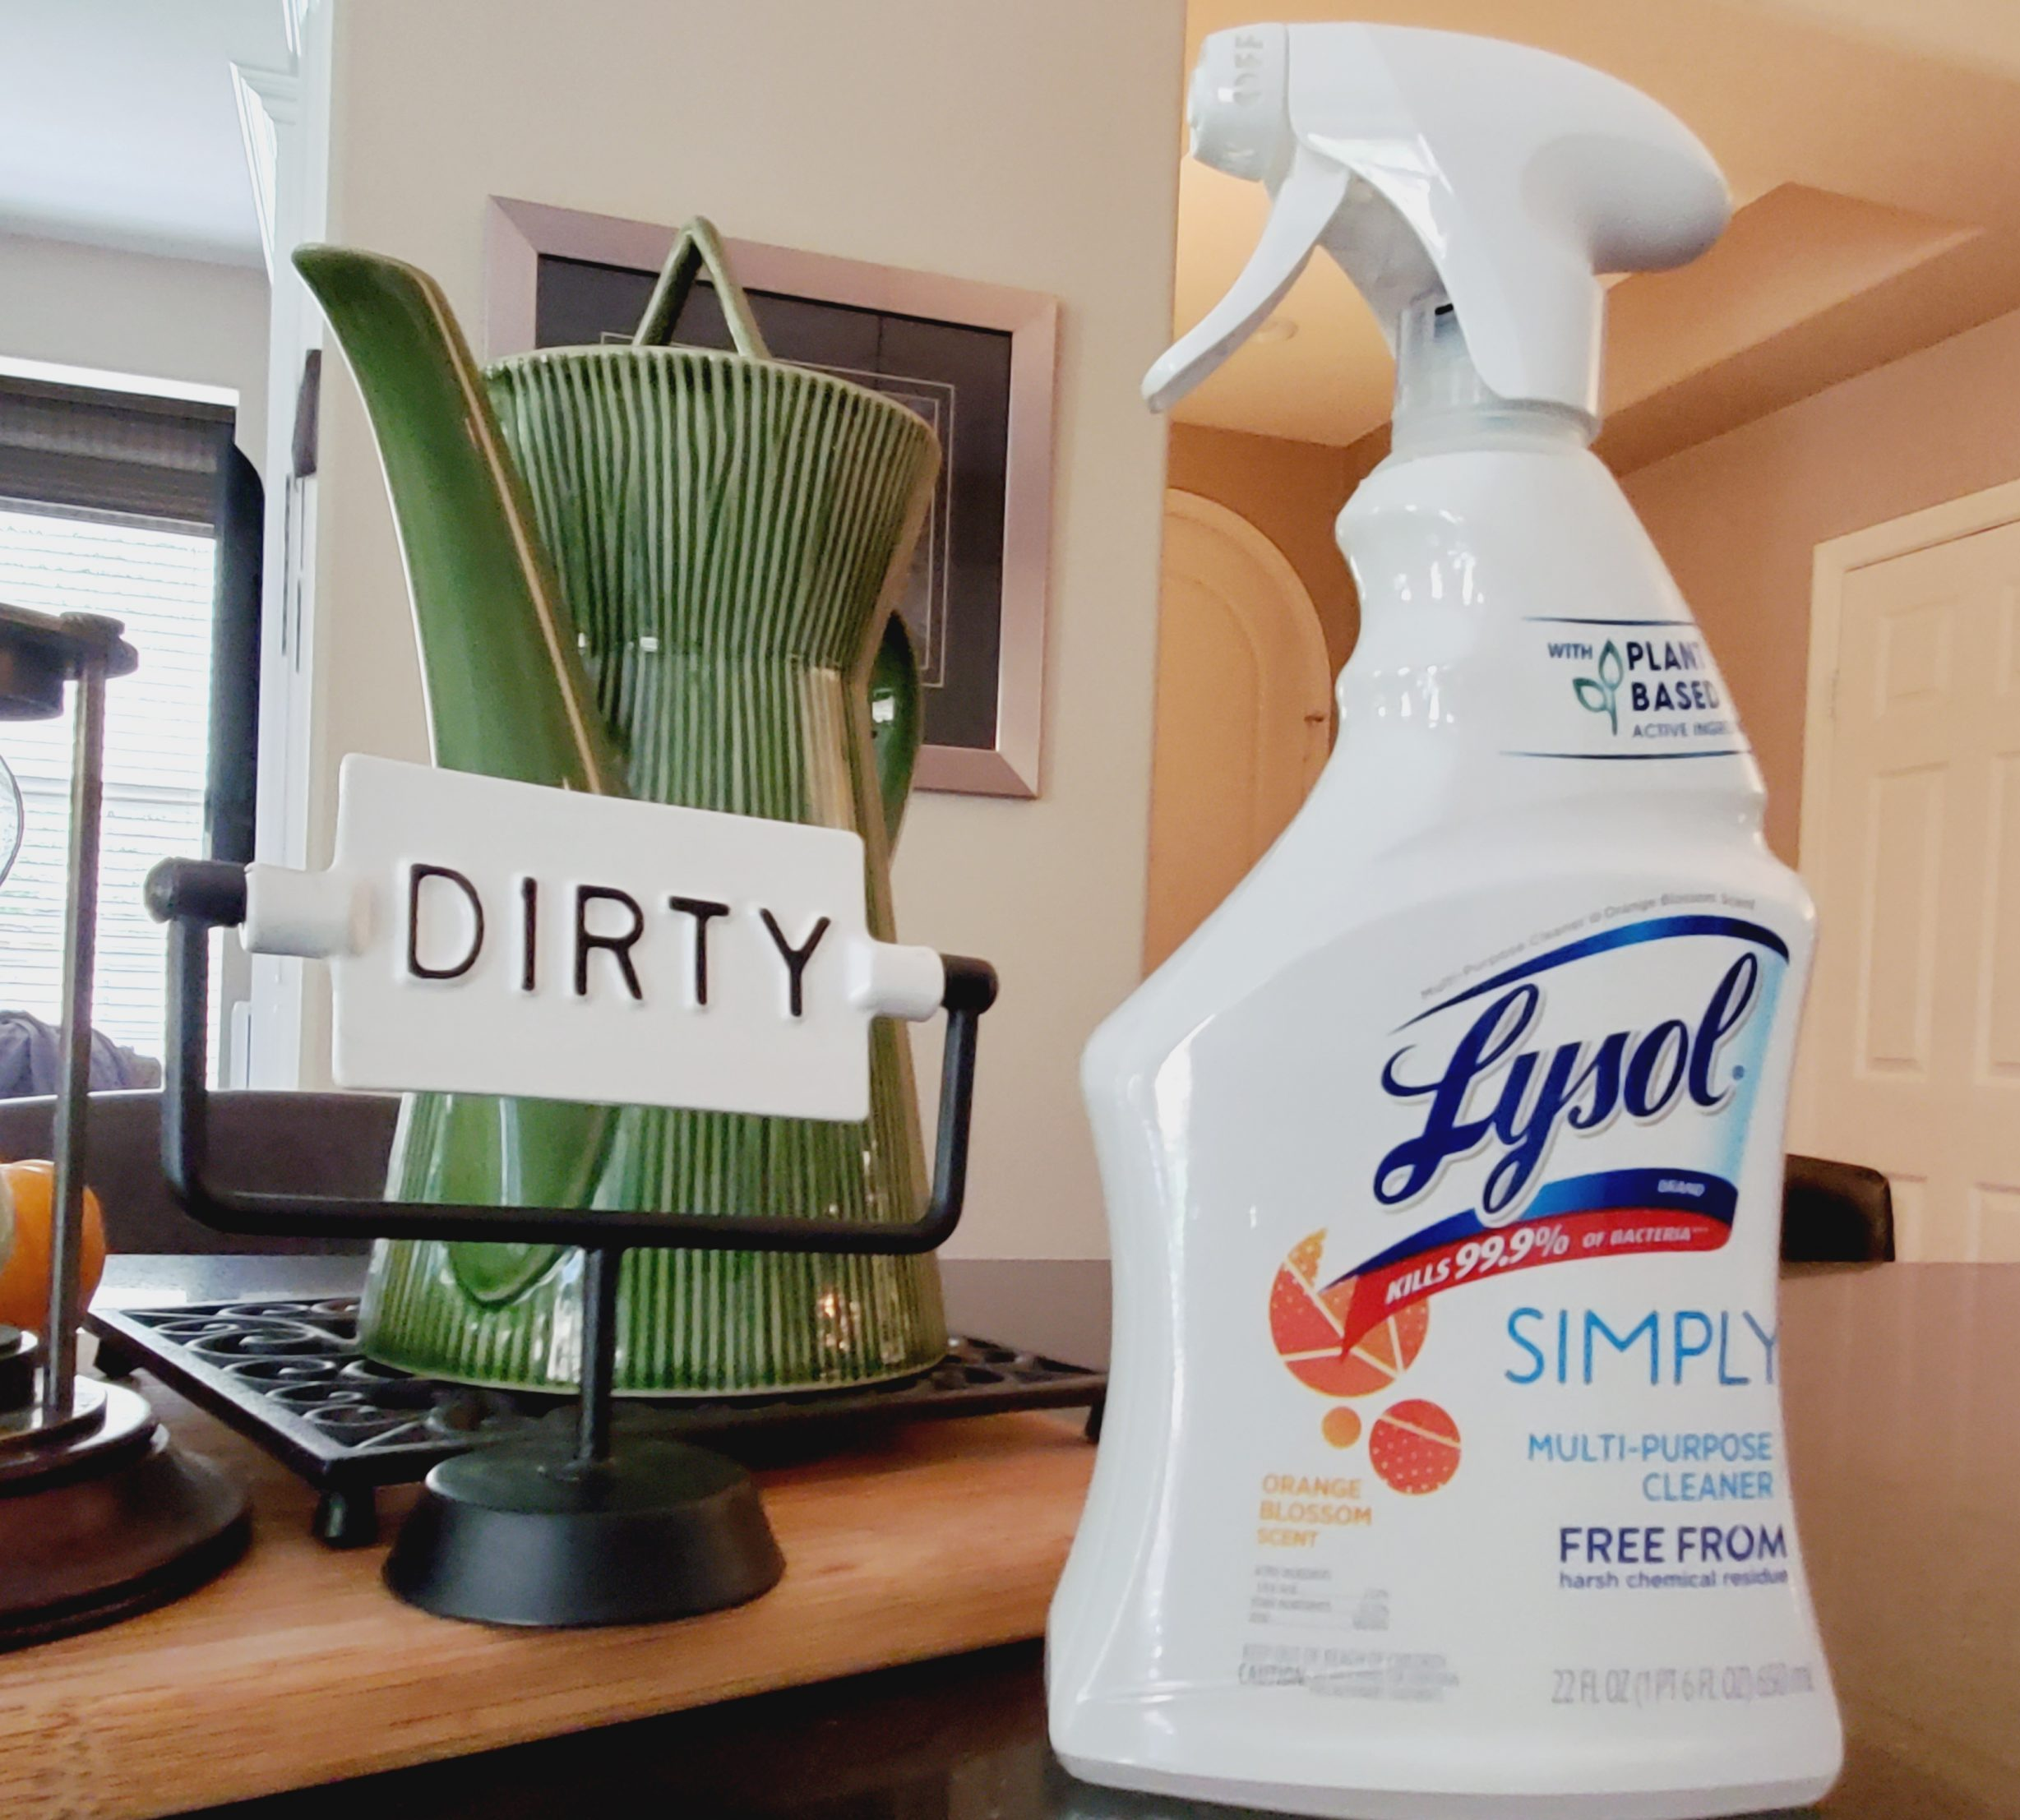 What to Know About Lysol Simply Orange Blossom (Tested Review)